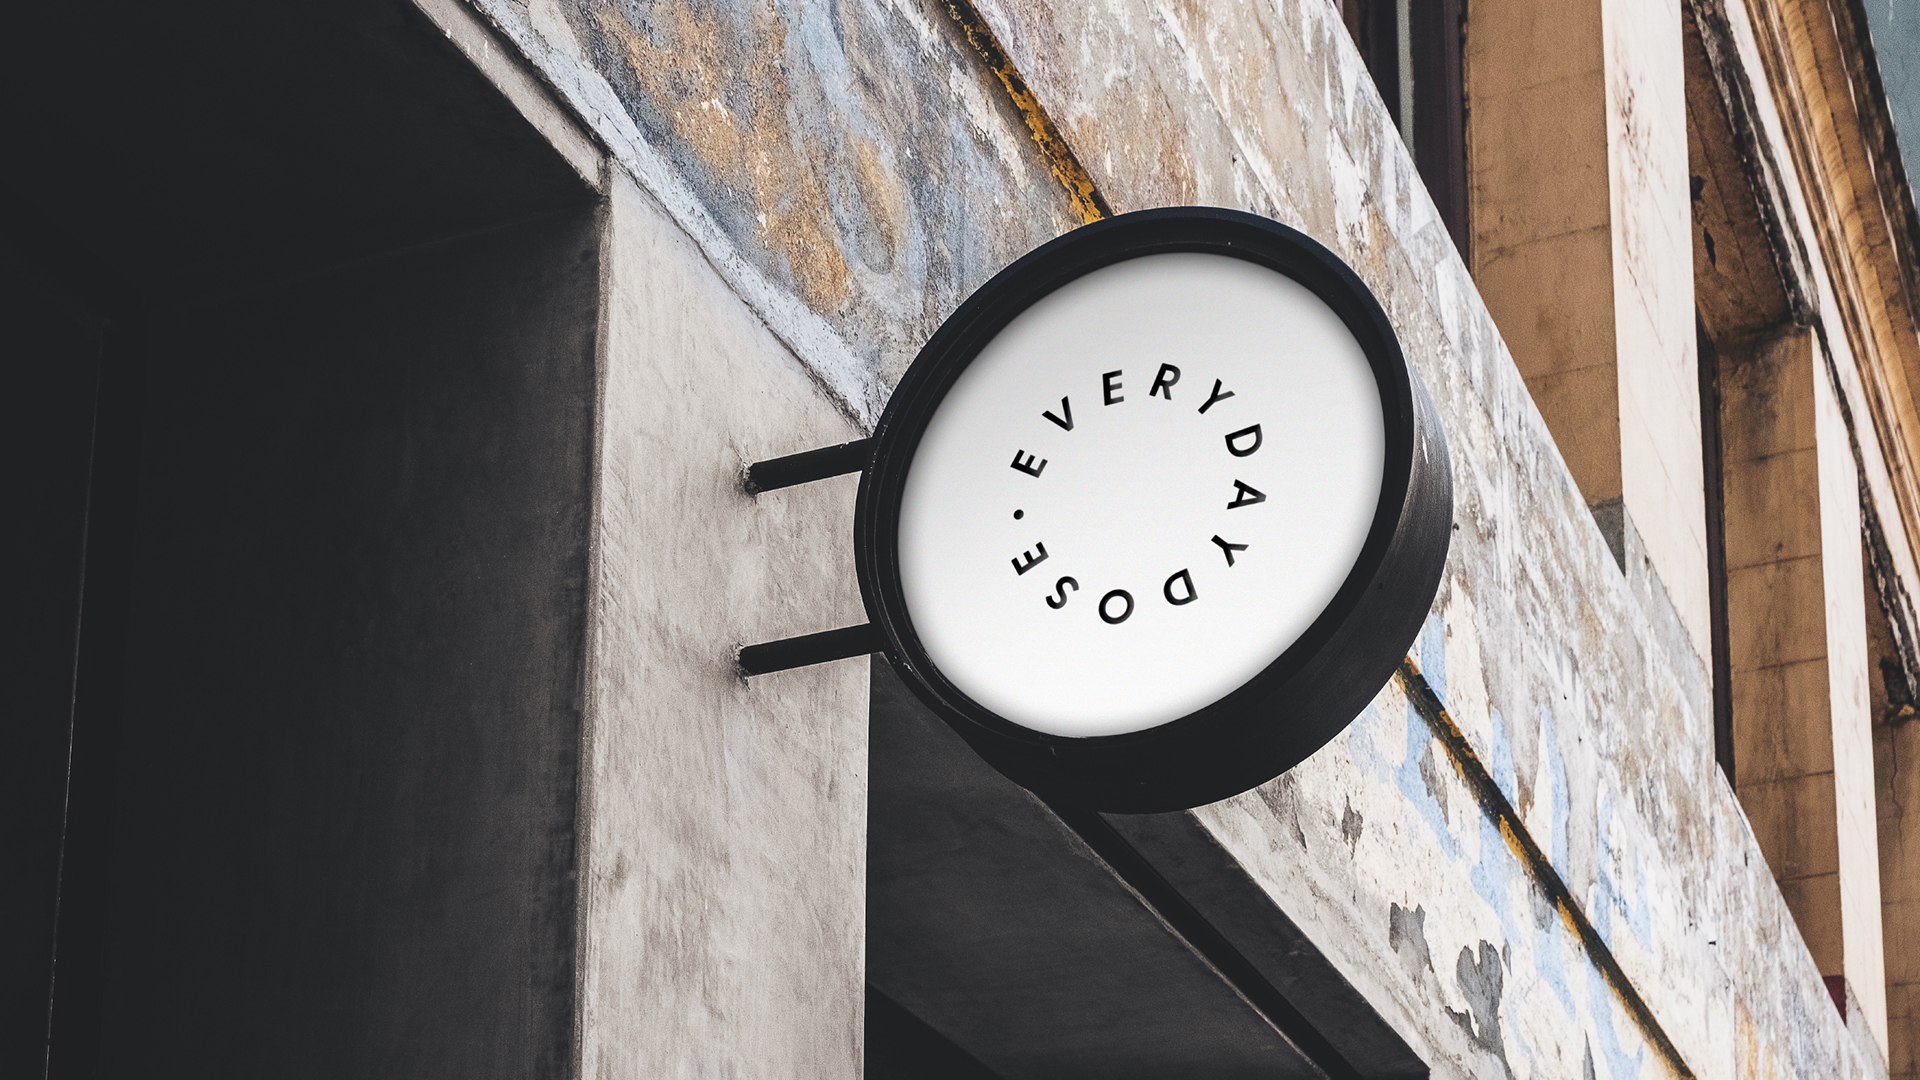 EVERYDAY DOSE   Everyday Dose is an espresso bar located in Christchurch, New Zealand. A modern and minimal yet by no means inhibited brand that coalesce with the identity and product of the shop. Design is by Elliot Stansfield of  Stansfield Design Studio  based in New Zealand.